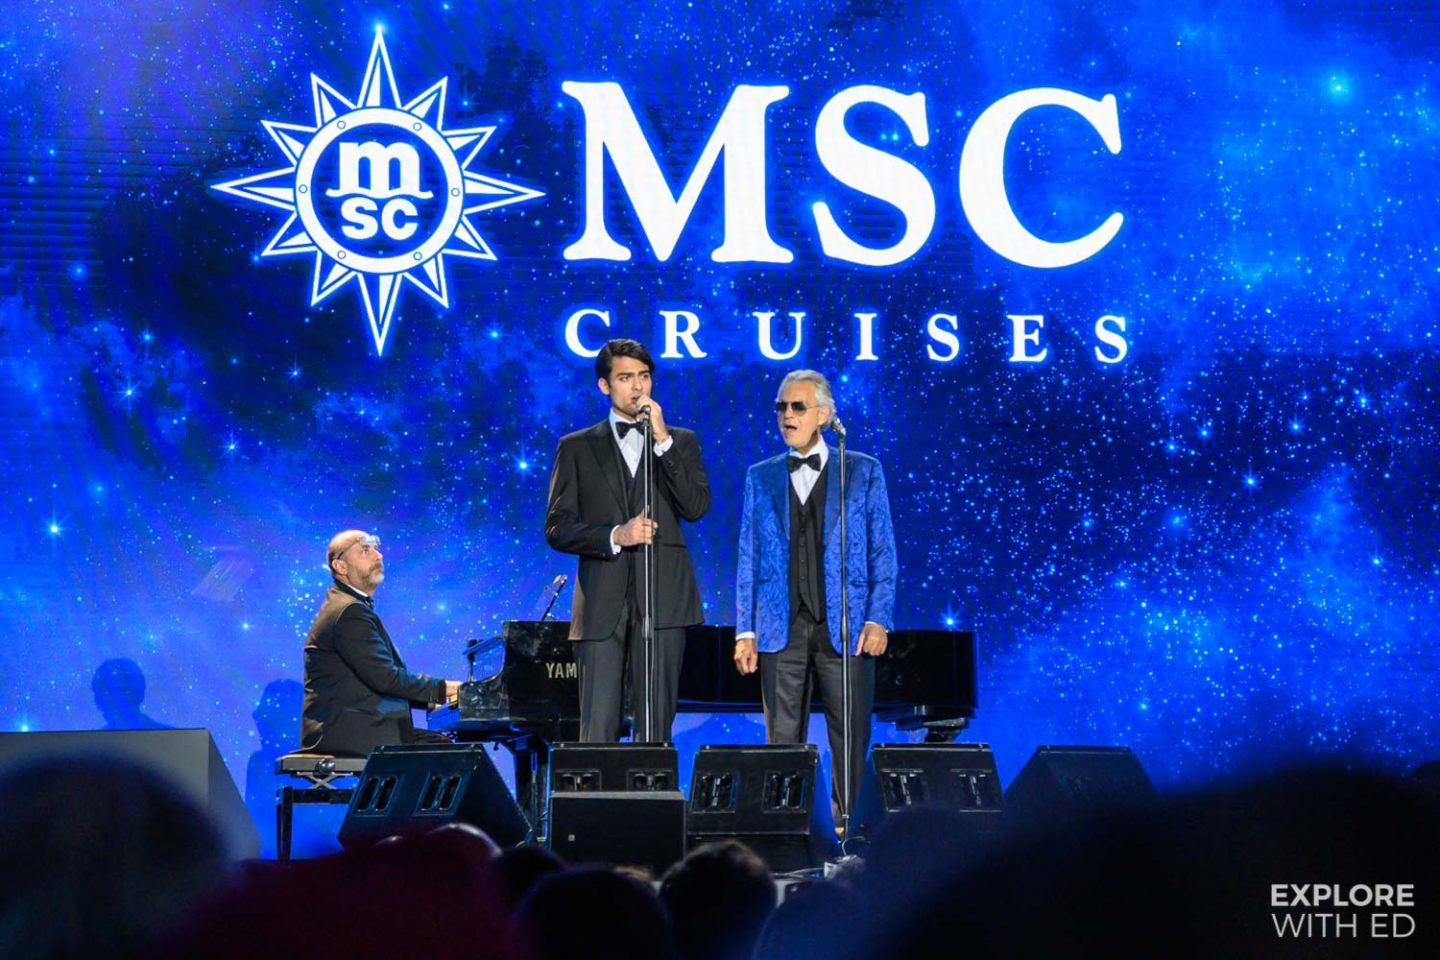 Andrea and Matteo Bocelli opening the MSC Bellissima naming ceremony in Southampton, England